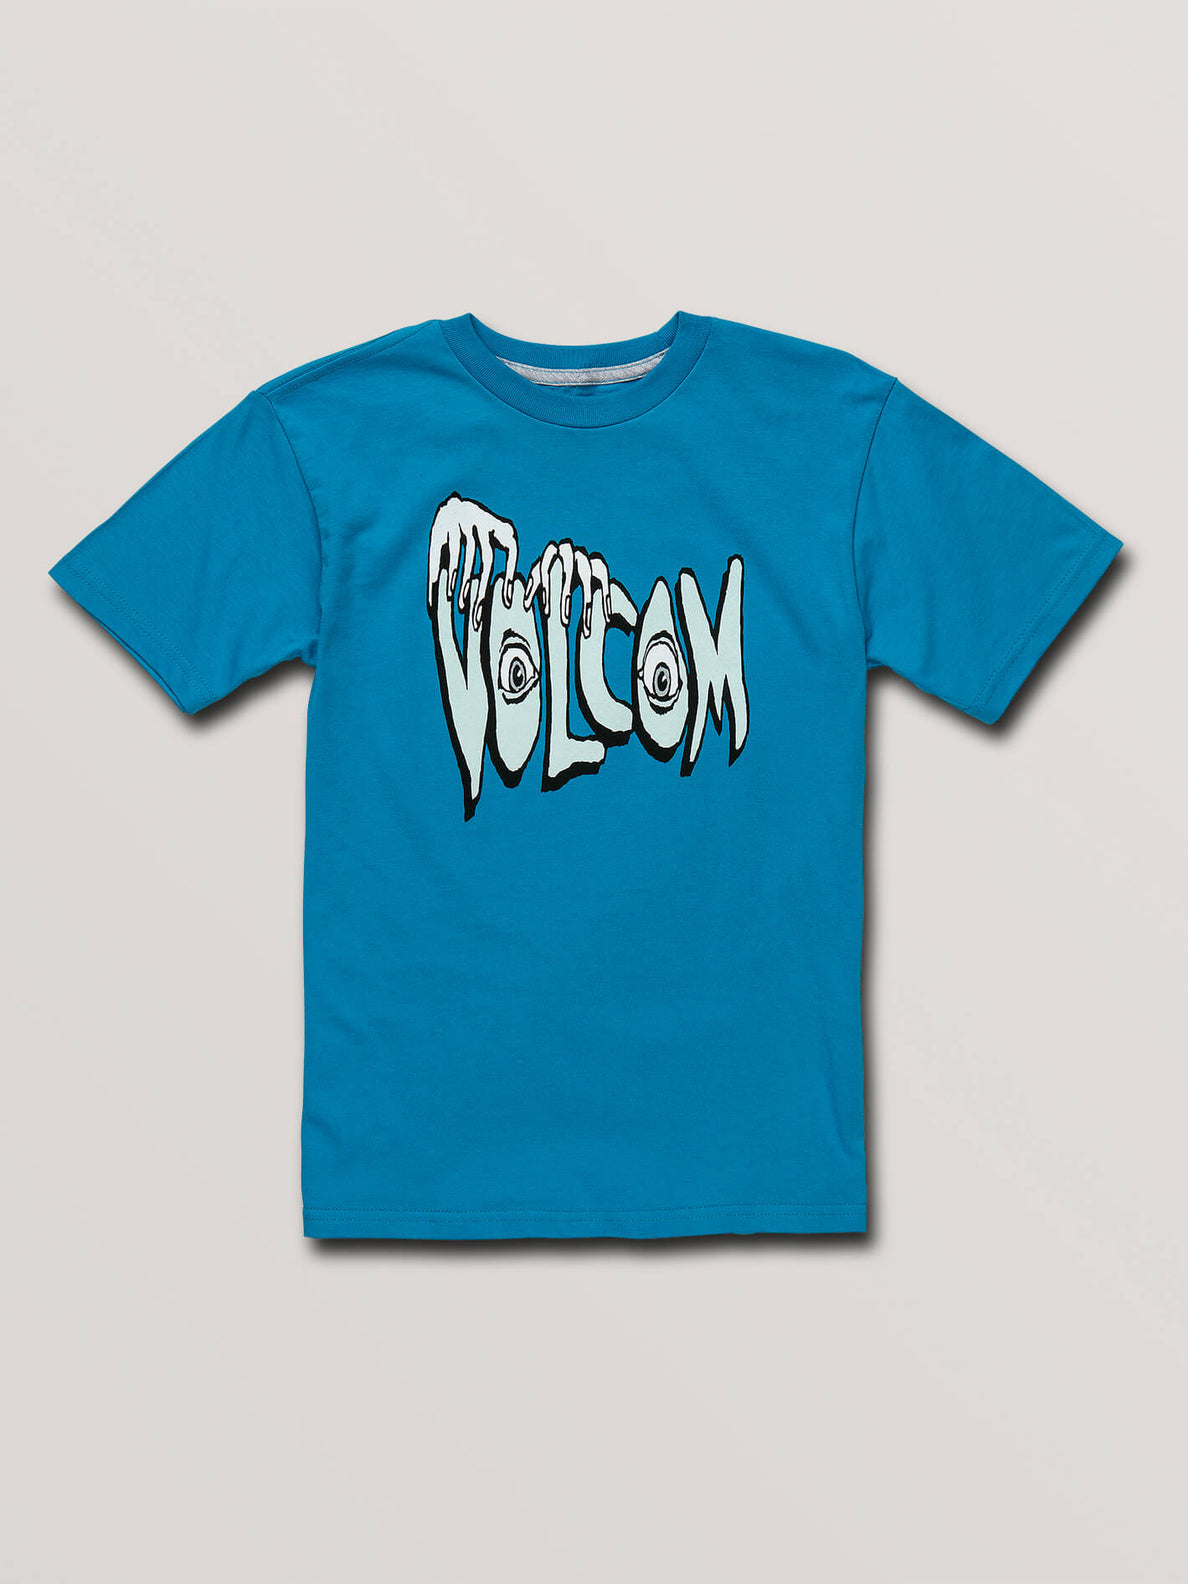 Big Boys Volcom Panic Short Sleeve Tee In Bright Blue, Front View